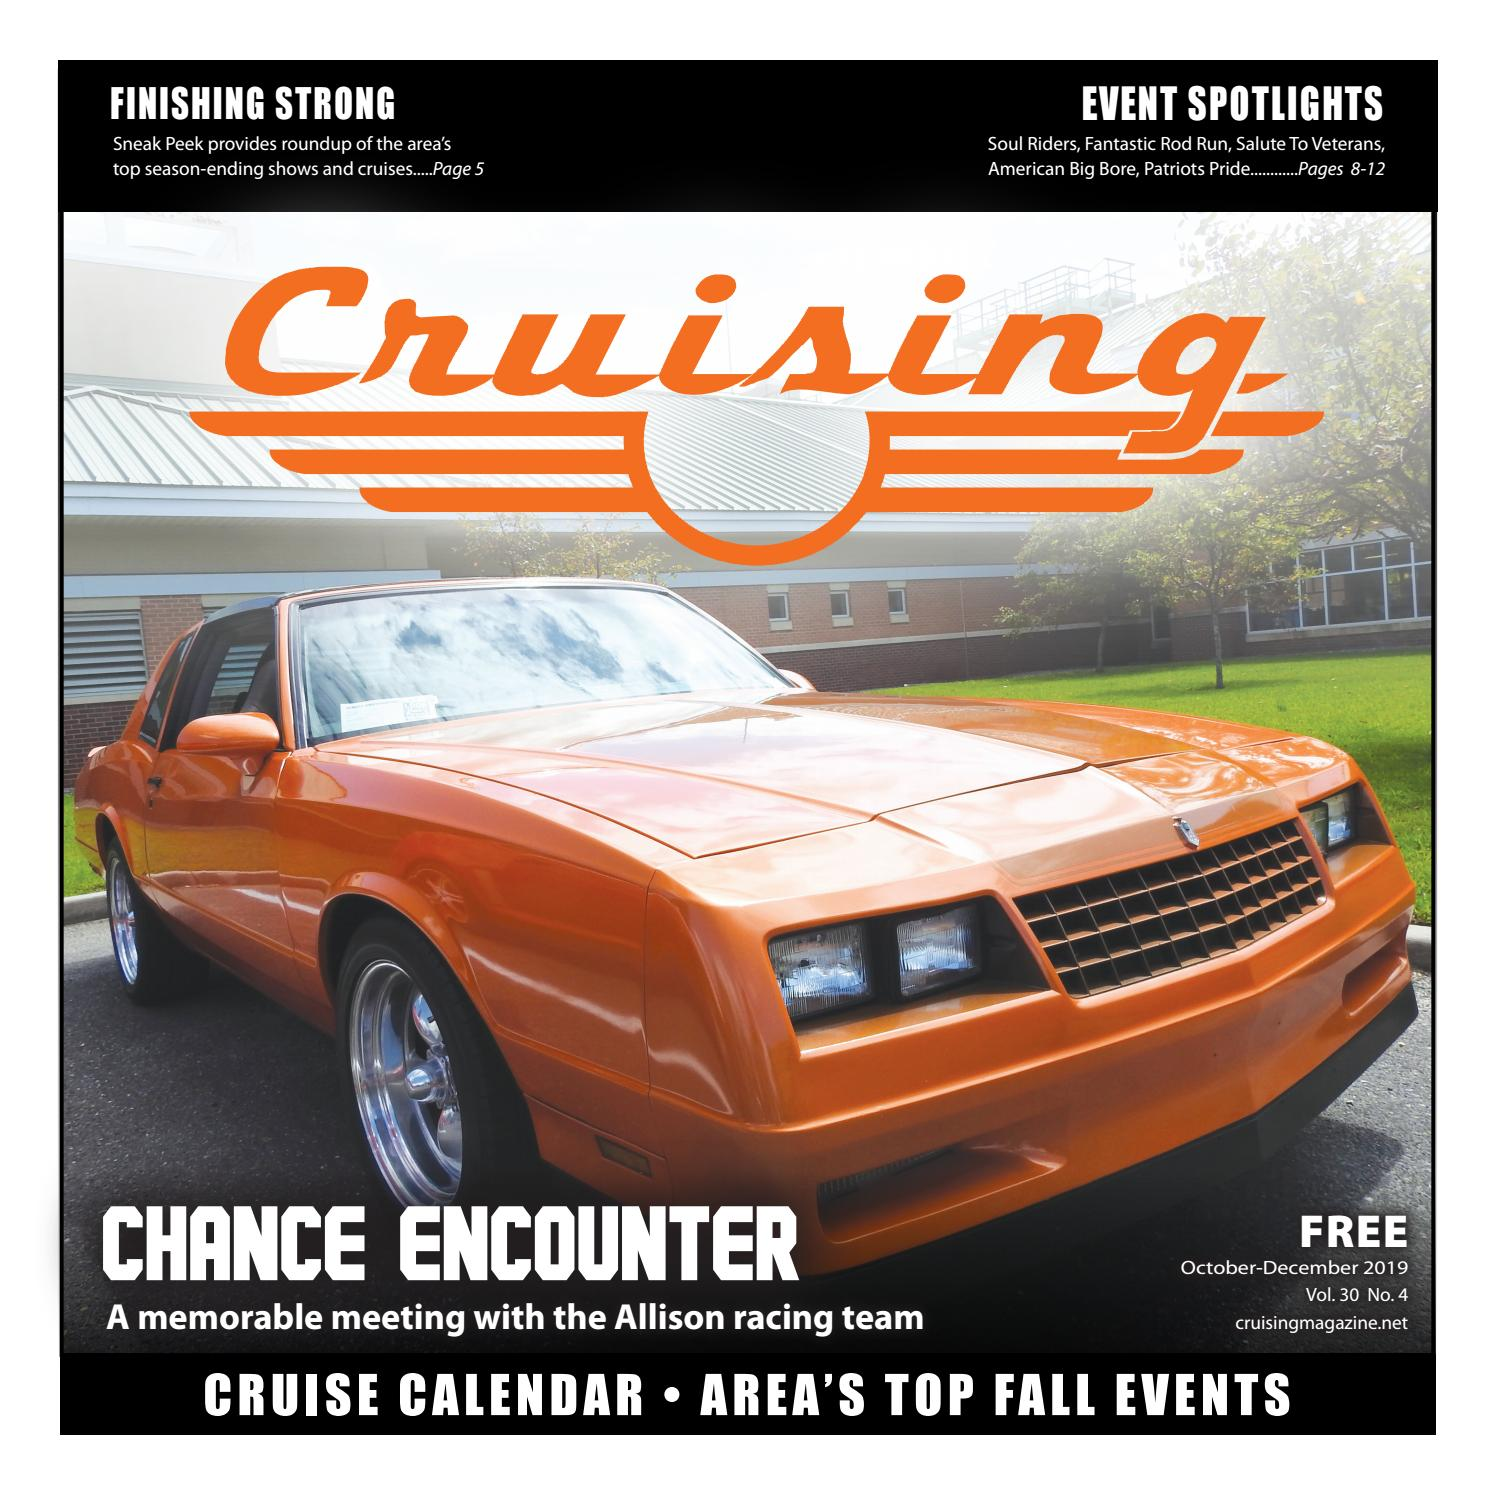 Dvrr Halloween Car Show 2020 Cruising Magazine   Oct. Dec. 2019 by outandabout   issuu